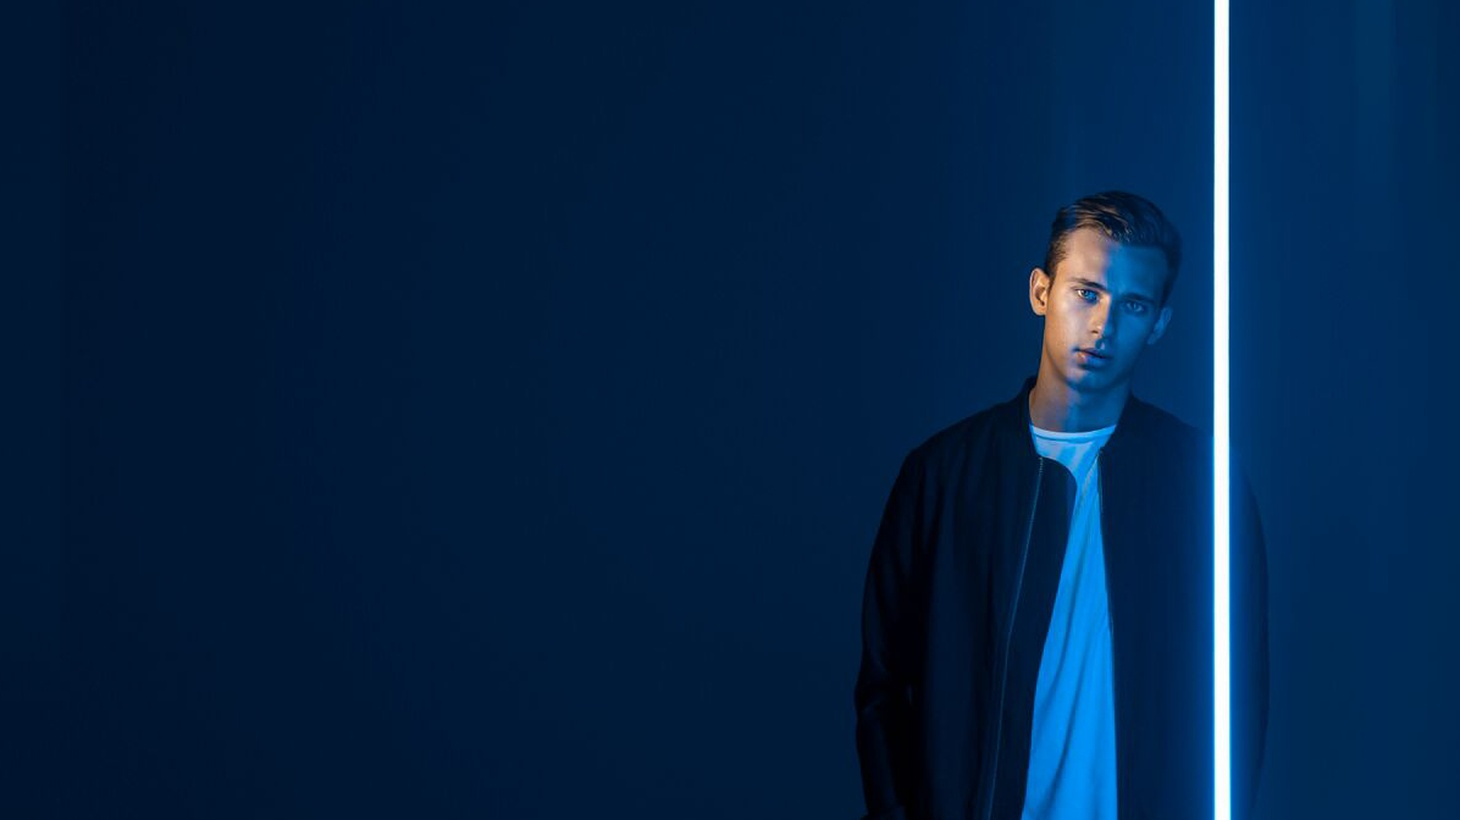 Australian producer extraordinaire Flume has had a banner year touring the globe.